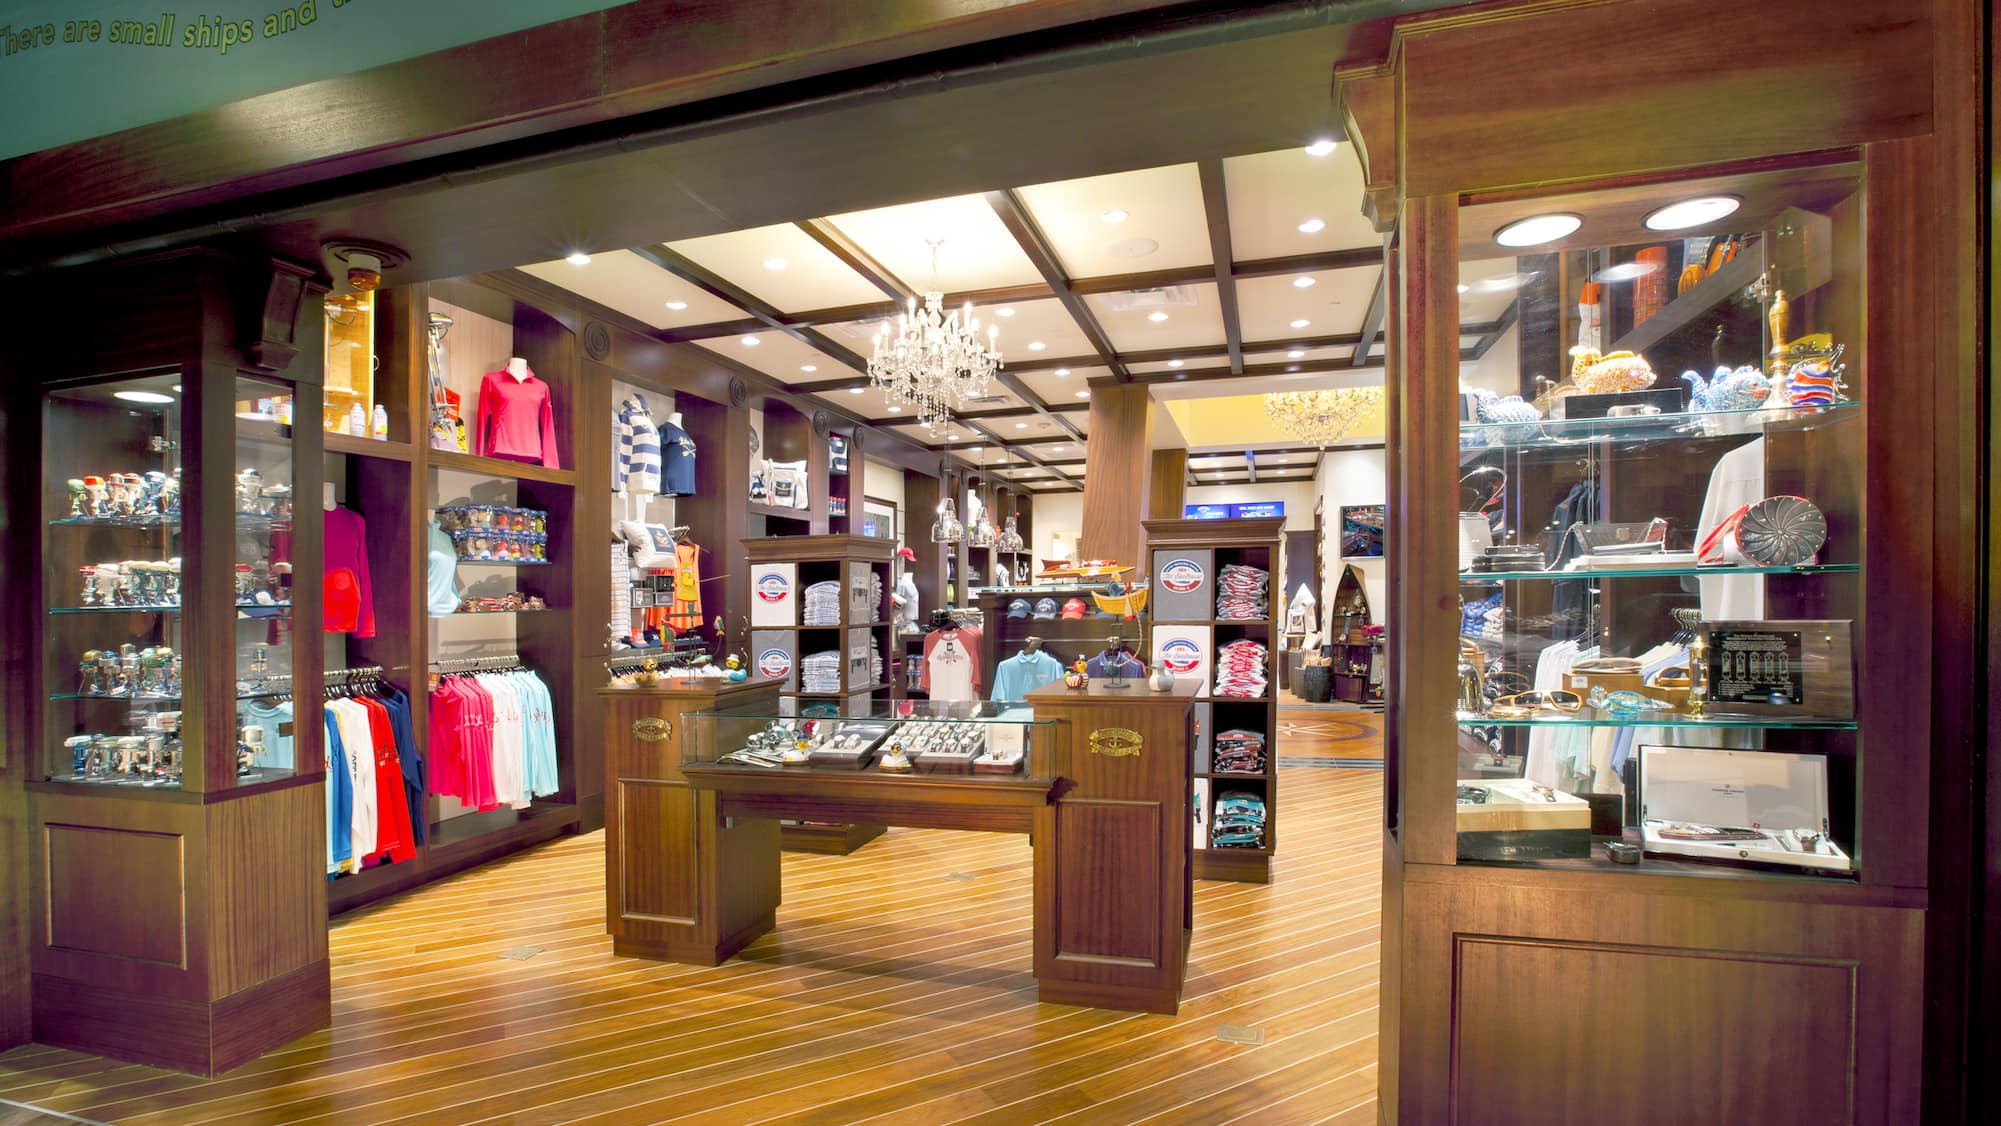 The BOATHOUSE BOUTIQUE